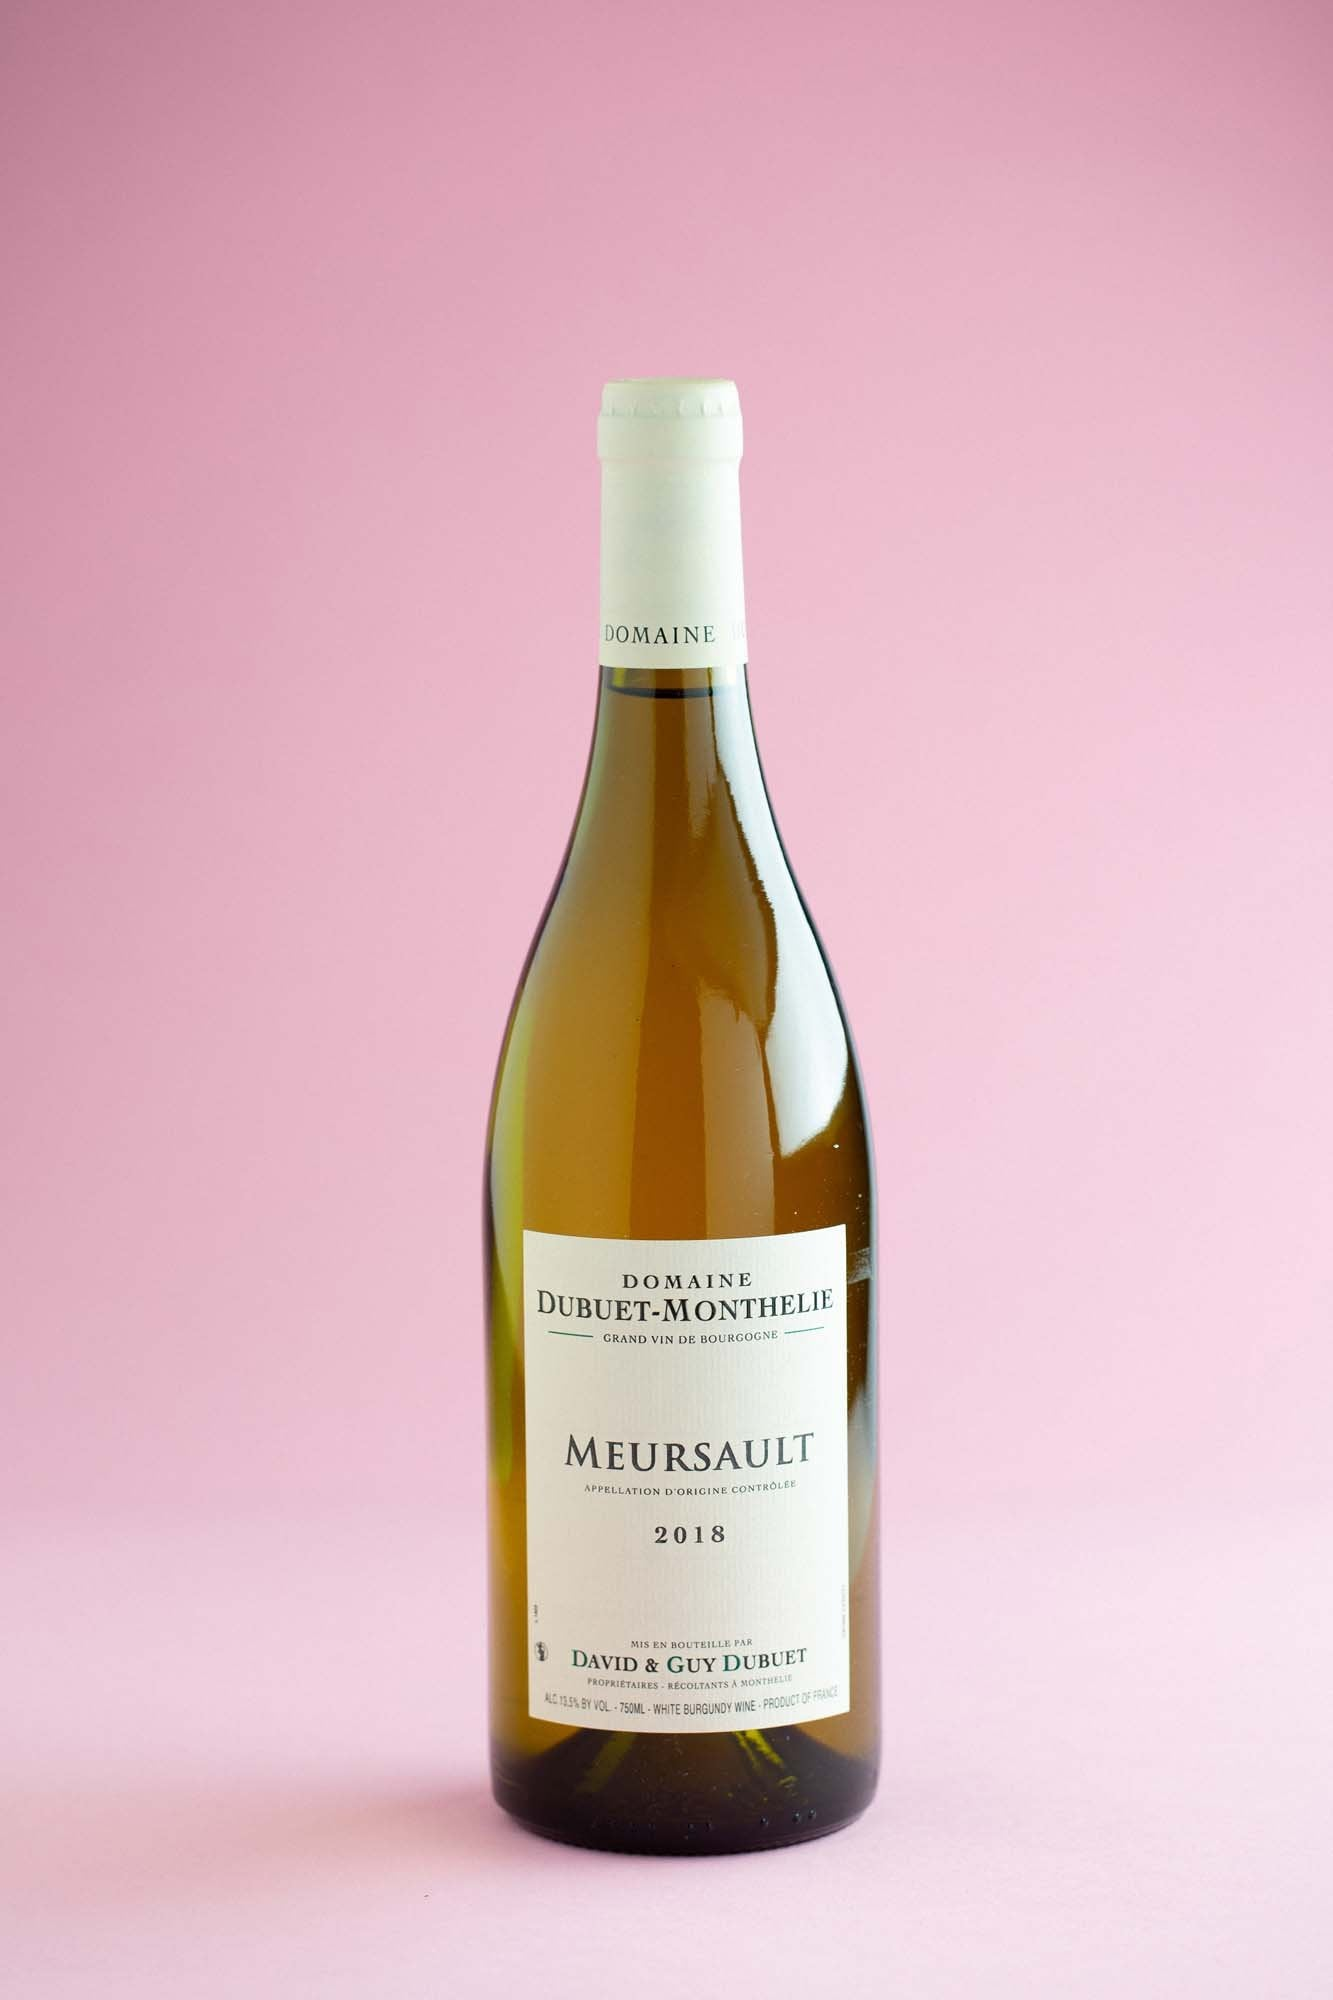 2018 Meursault, David & Guy Dubuet, Burgundy, France